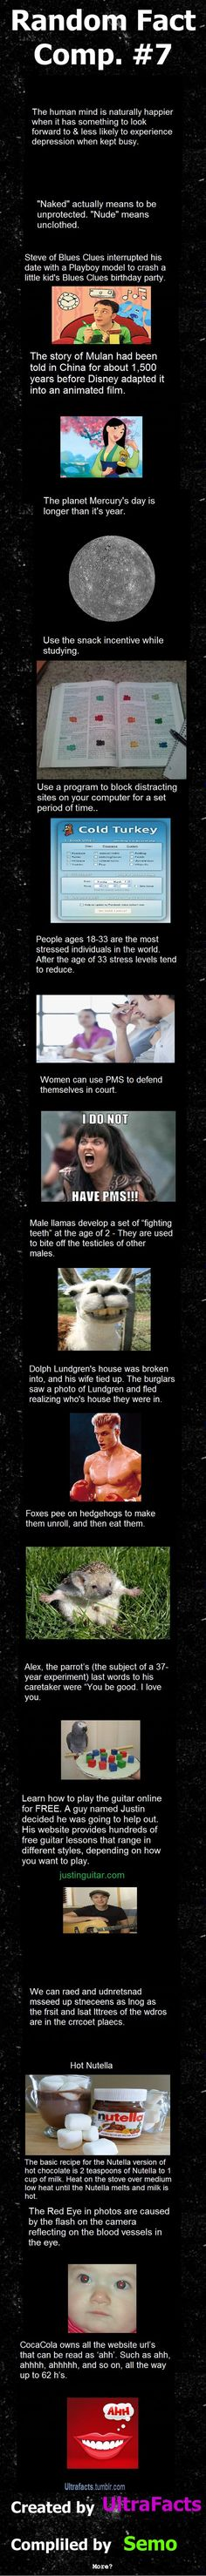 Random Fact Comp. 7 // funny pictures - funny photos - funny images - funny pics - funny quotes - #lol #humor #funnypictures: